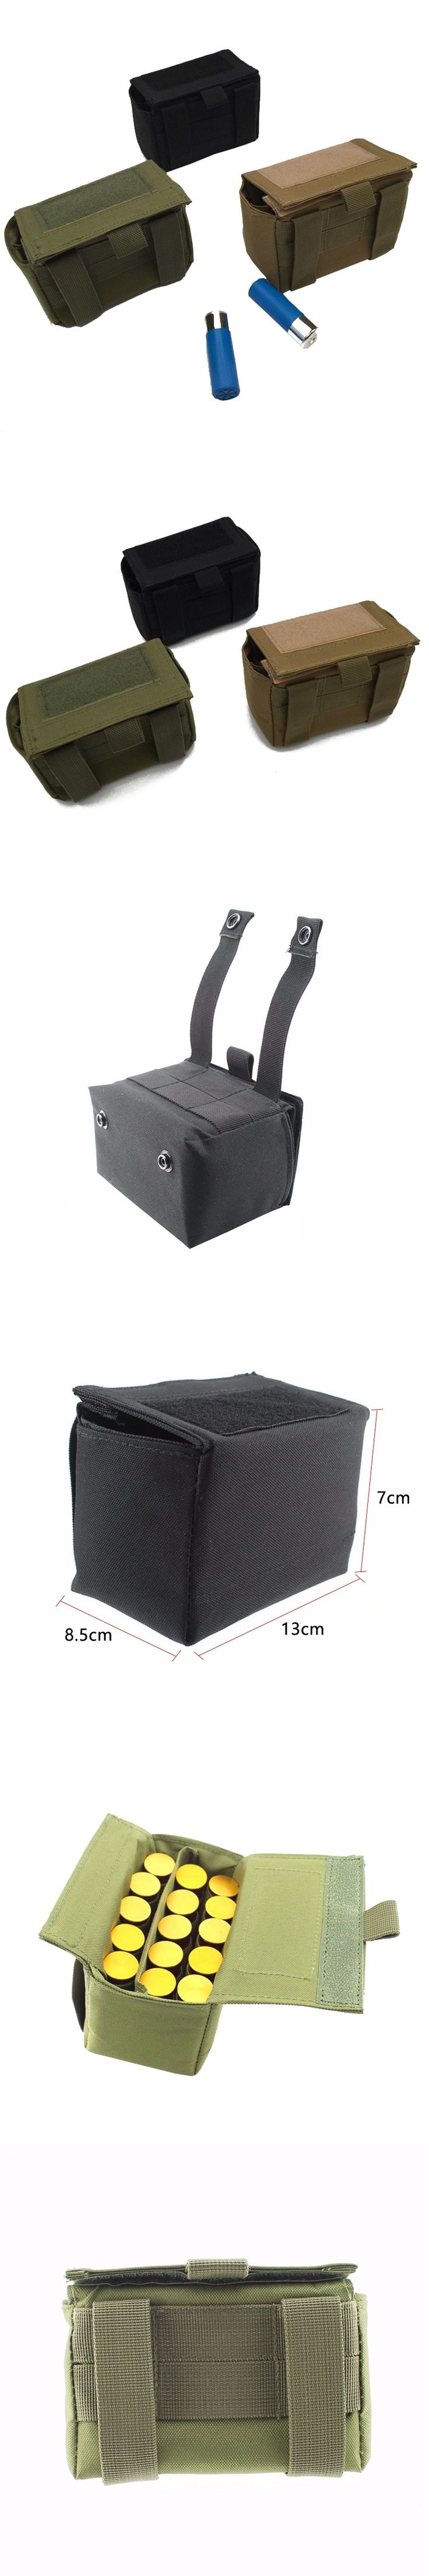 Balight Outdoor  Magazine Pouch Ammo Round Cartridge Holder Tactical 10 Round Shotshell Reload Holder Molle Pouch for 15 Gauge 5